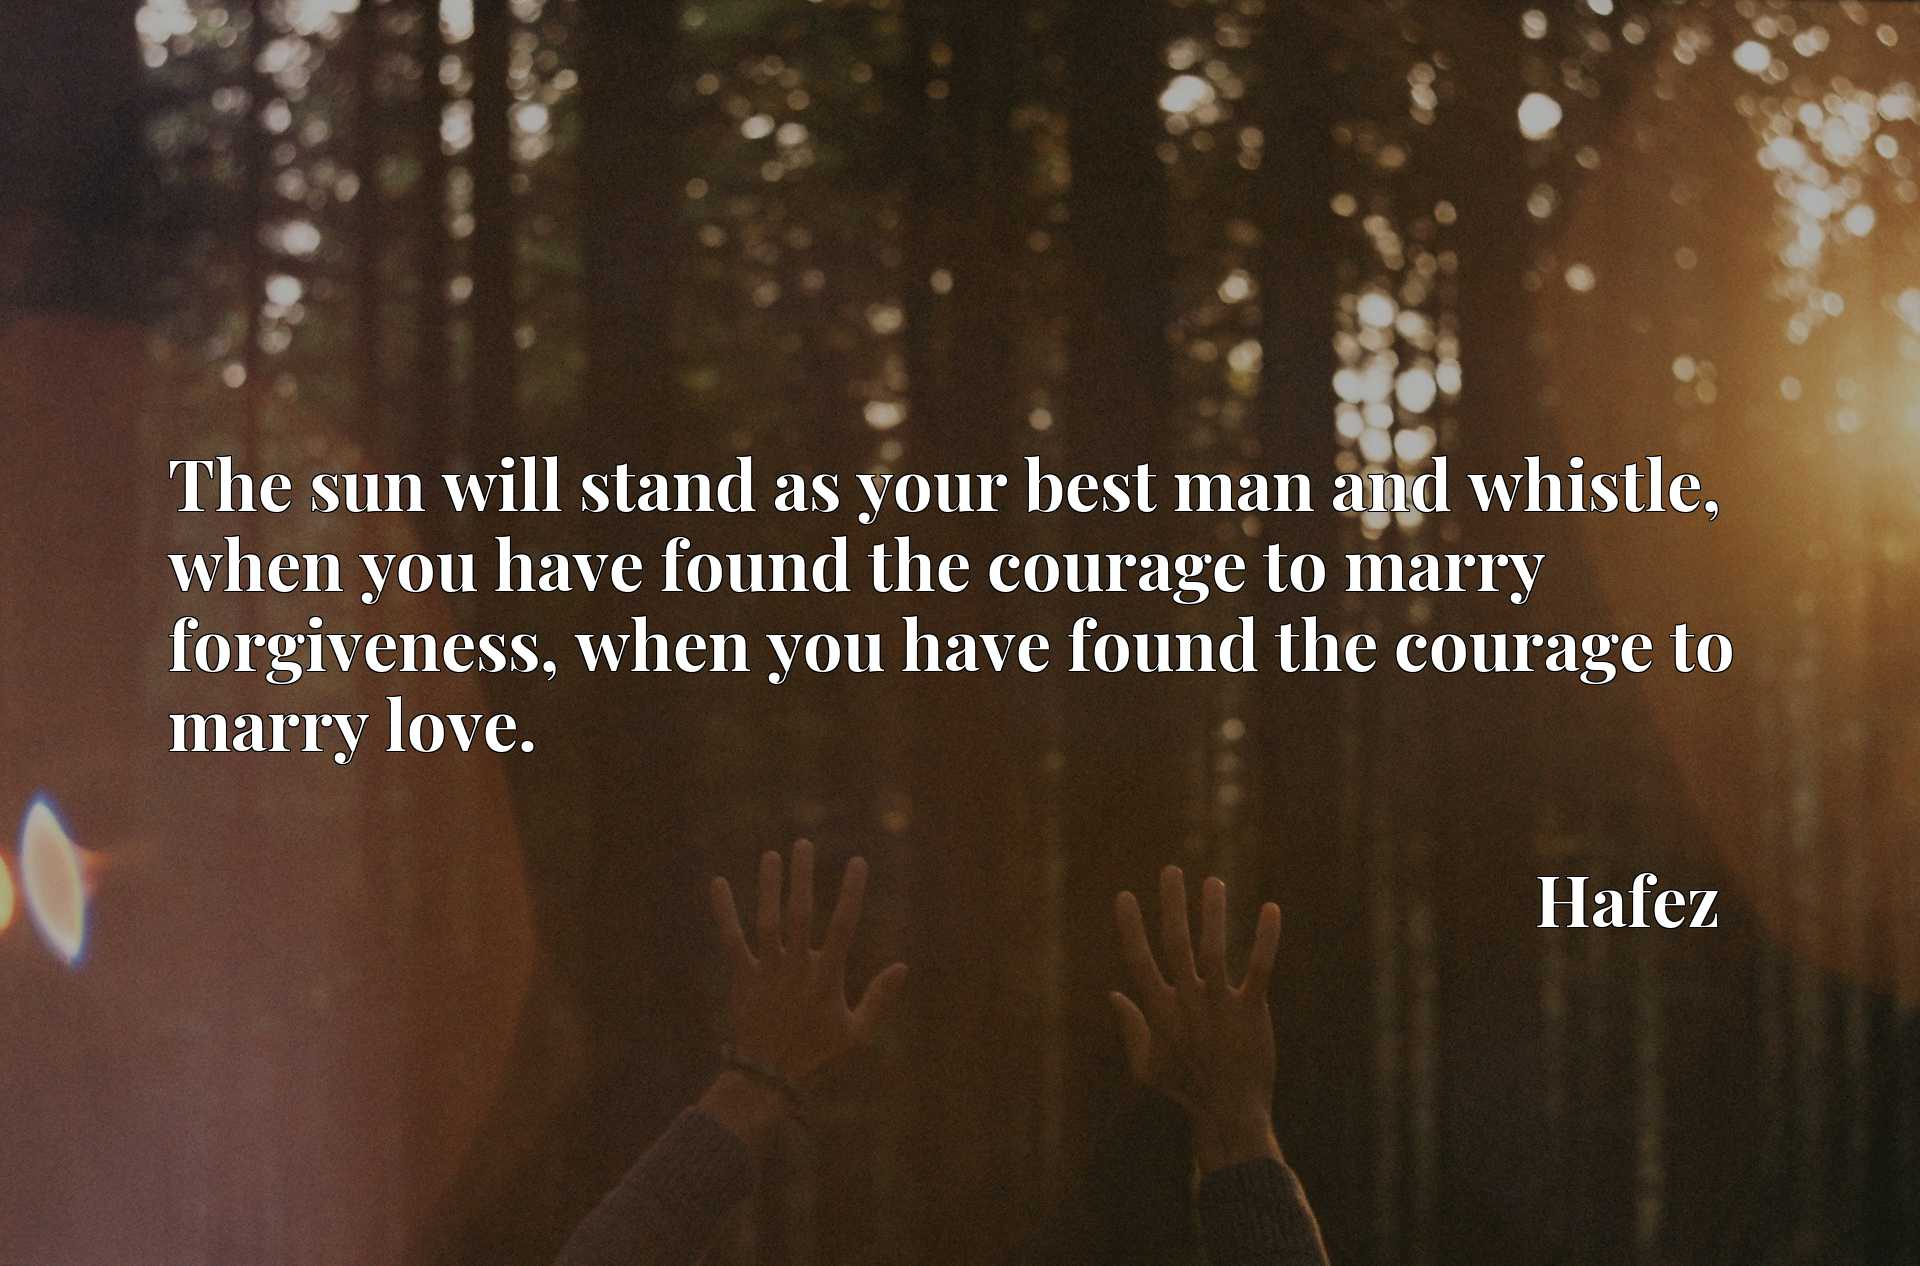 The sun will stand as your best man and whistle, when you have found the courage to marry forgiveness, when you have found the courage to marry love.